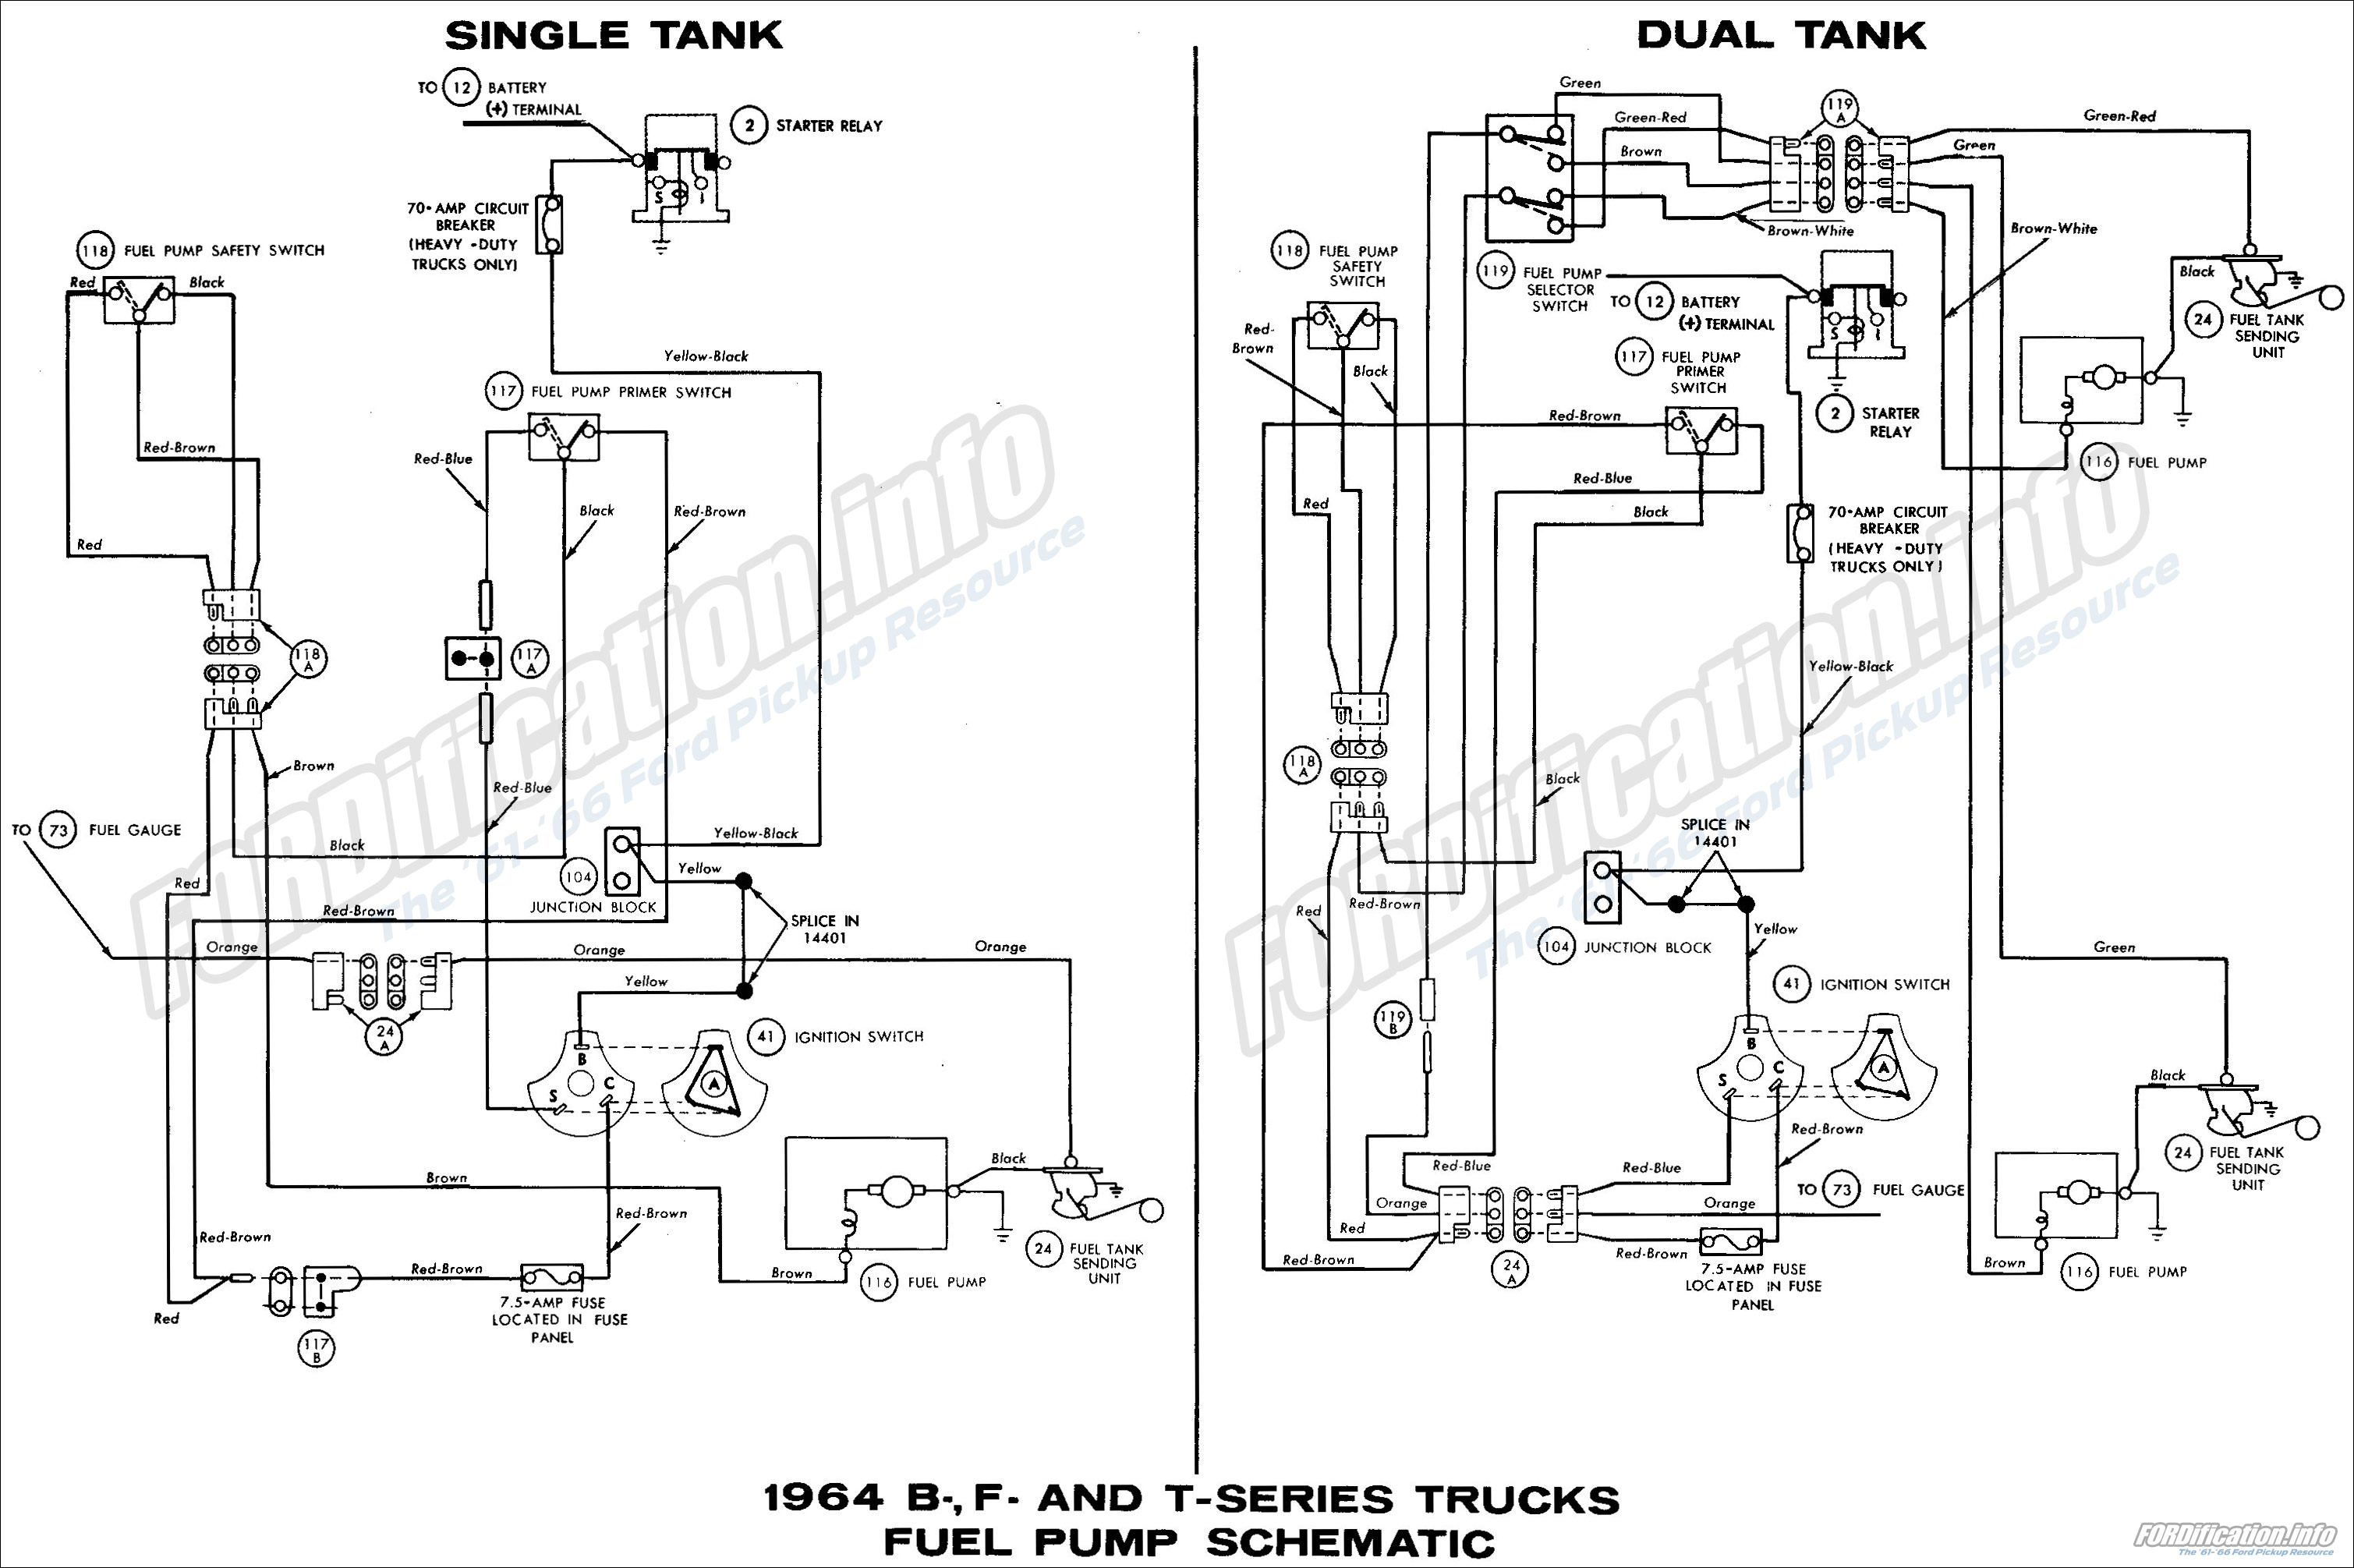 Wireing Diagram 1964 Ford Flatbed Truck | Wiring Diagram Database on 94 ford ranger ignition diagram, ford abs system wiring diagram, ford truck ignition wiring, ford ignition schematic, ford ignition switch removal, ford cop ignition wiring diagrams, 1978 ford ignition switch diagram, ford ignition switch problems, 2000 ford mustang ignition switch diagram, ford electrical wiring diagrams, ford ignition module wiring diagram, 1970 ford ignition switch diagram, 1972 f-100 wiring diagram, ford ignition key switch, 1974 ford ignition wiring diagram, ford ignition wiring diagram fuel, ford ignition parts diagram, ford wiring harness diagrams, ford regulator wiring diagram, ford alternator wiring diagram,